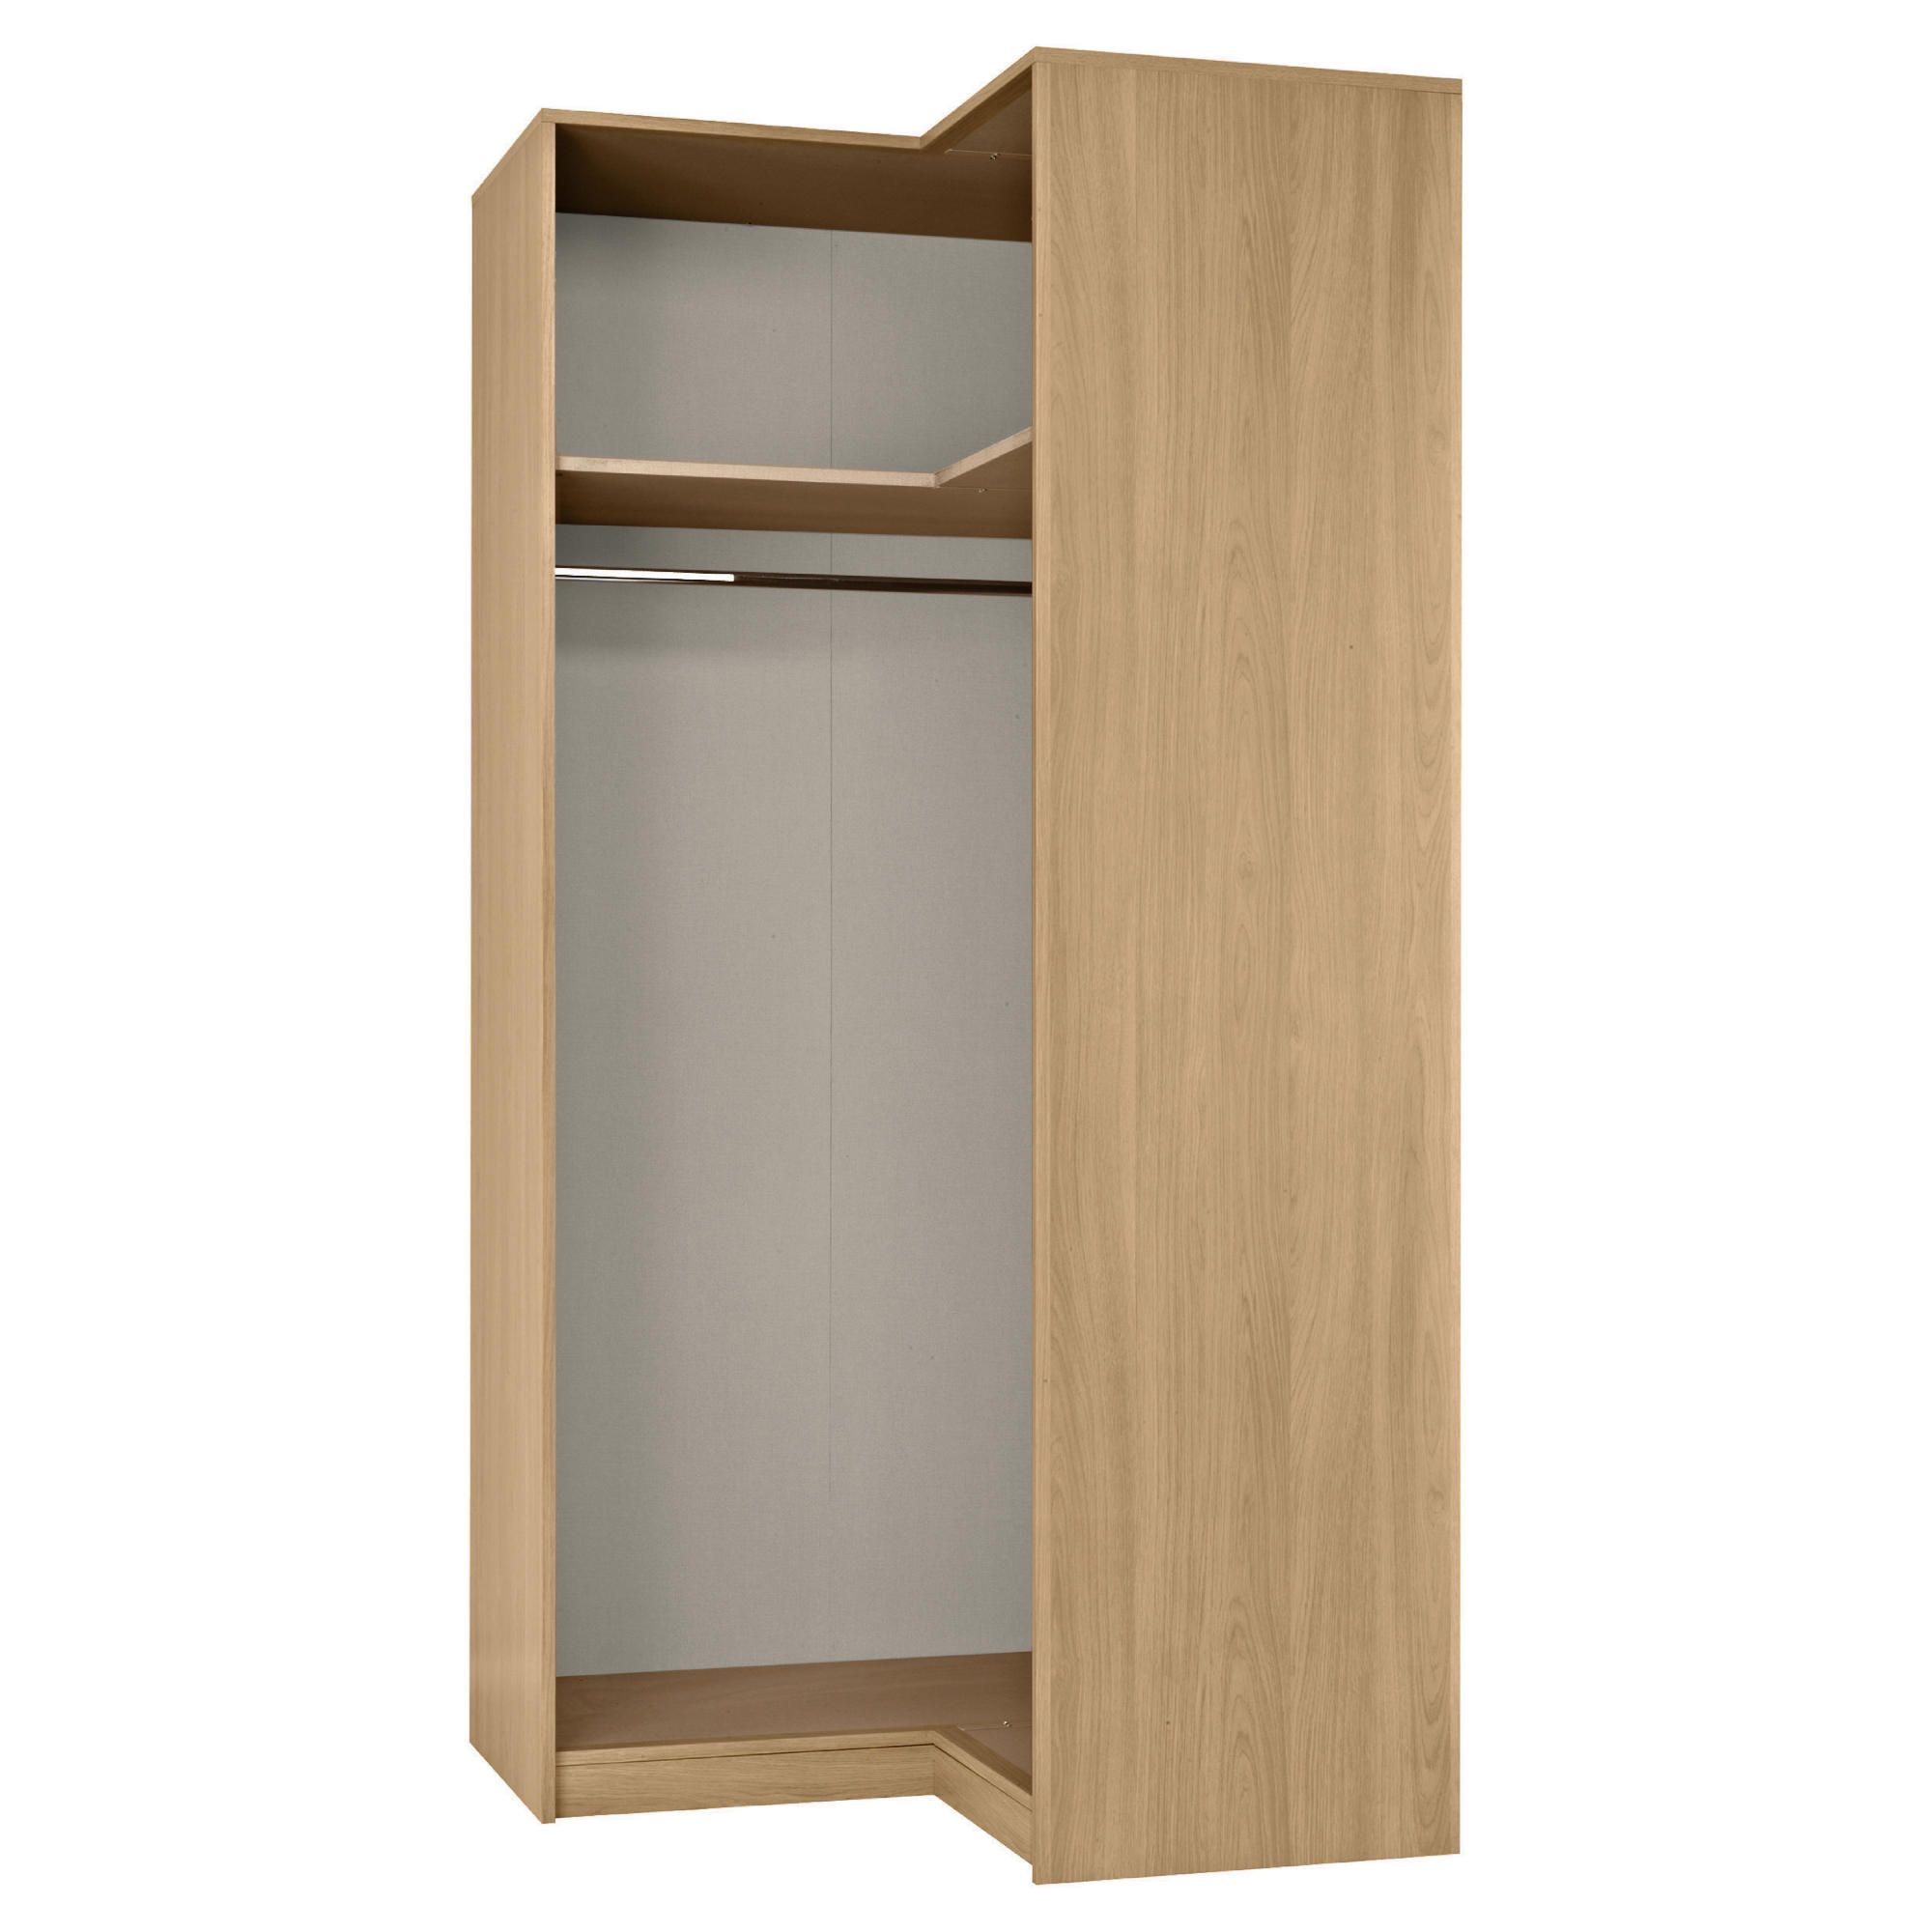 Modular Corner Wardrobe Frame, Oak-Effect at Tesco Direct